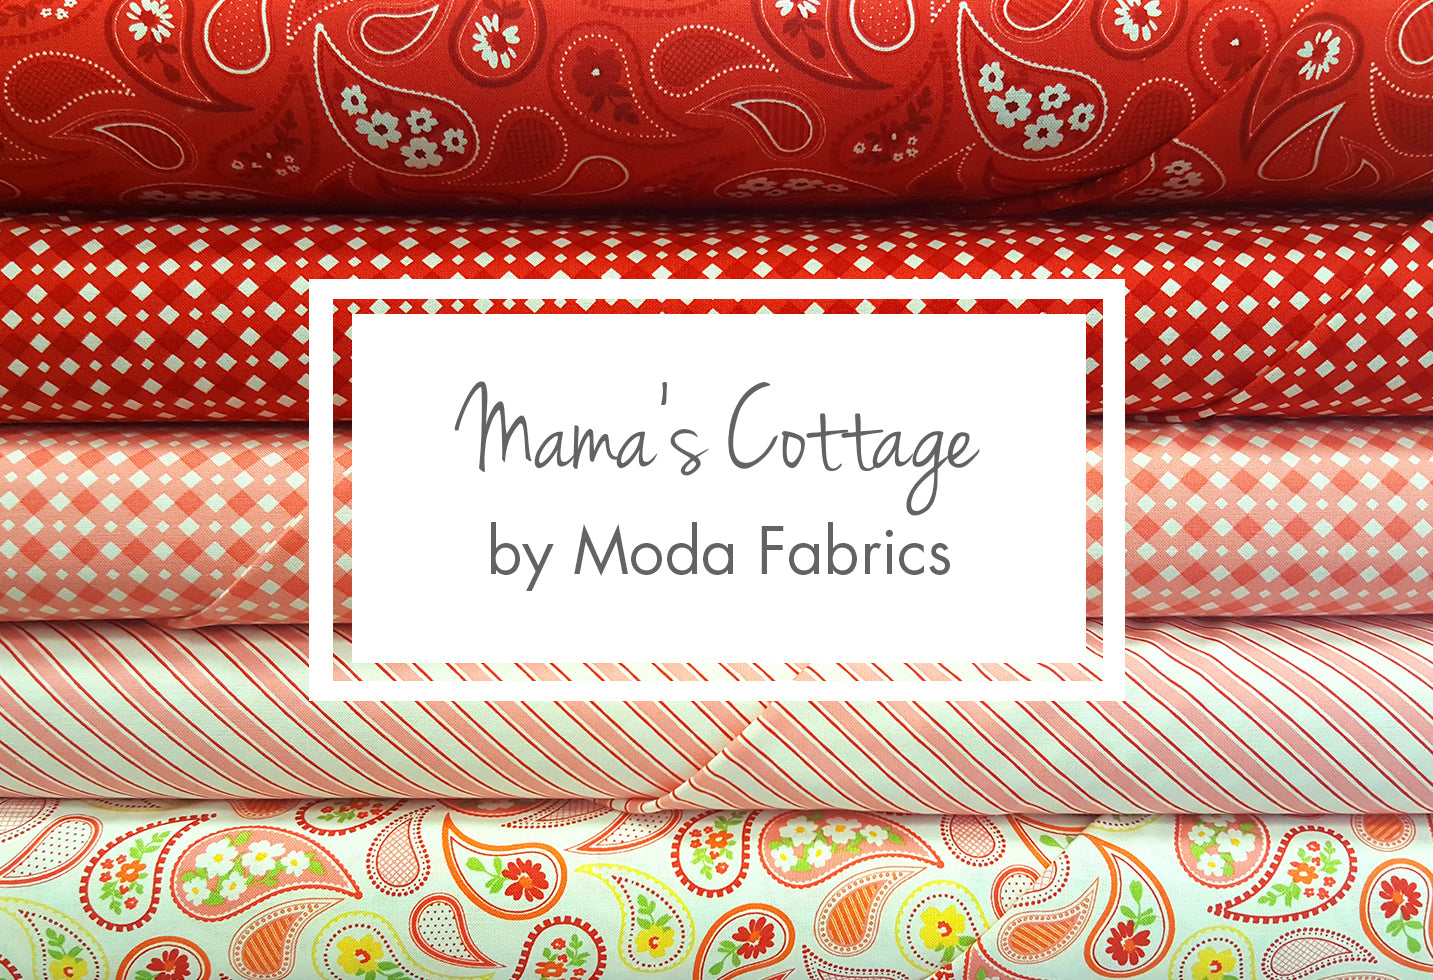 Sew much more sewing quilting machine store austin texas mamas cottage by moda fabrics gumiabroncs Image collections